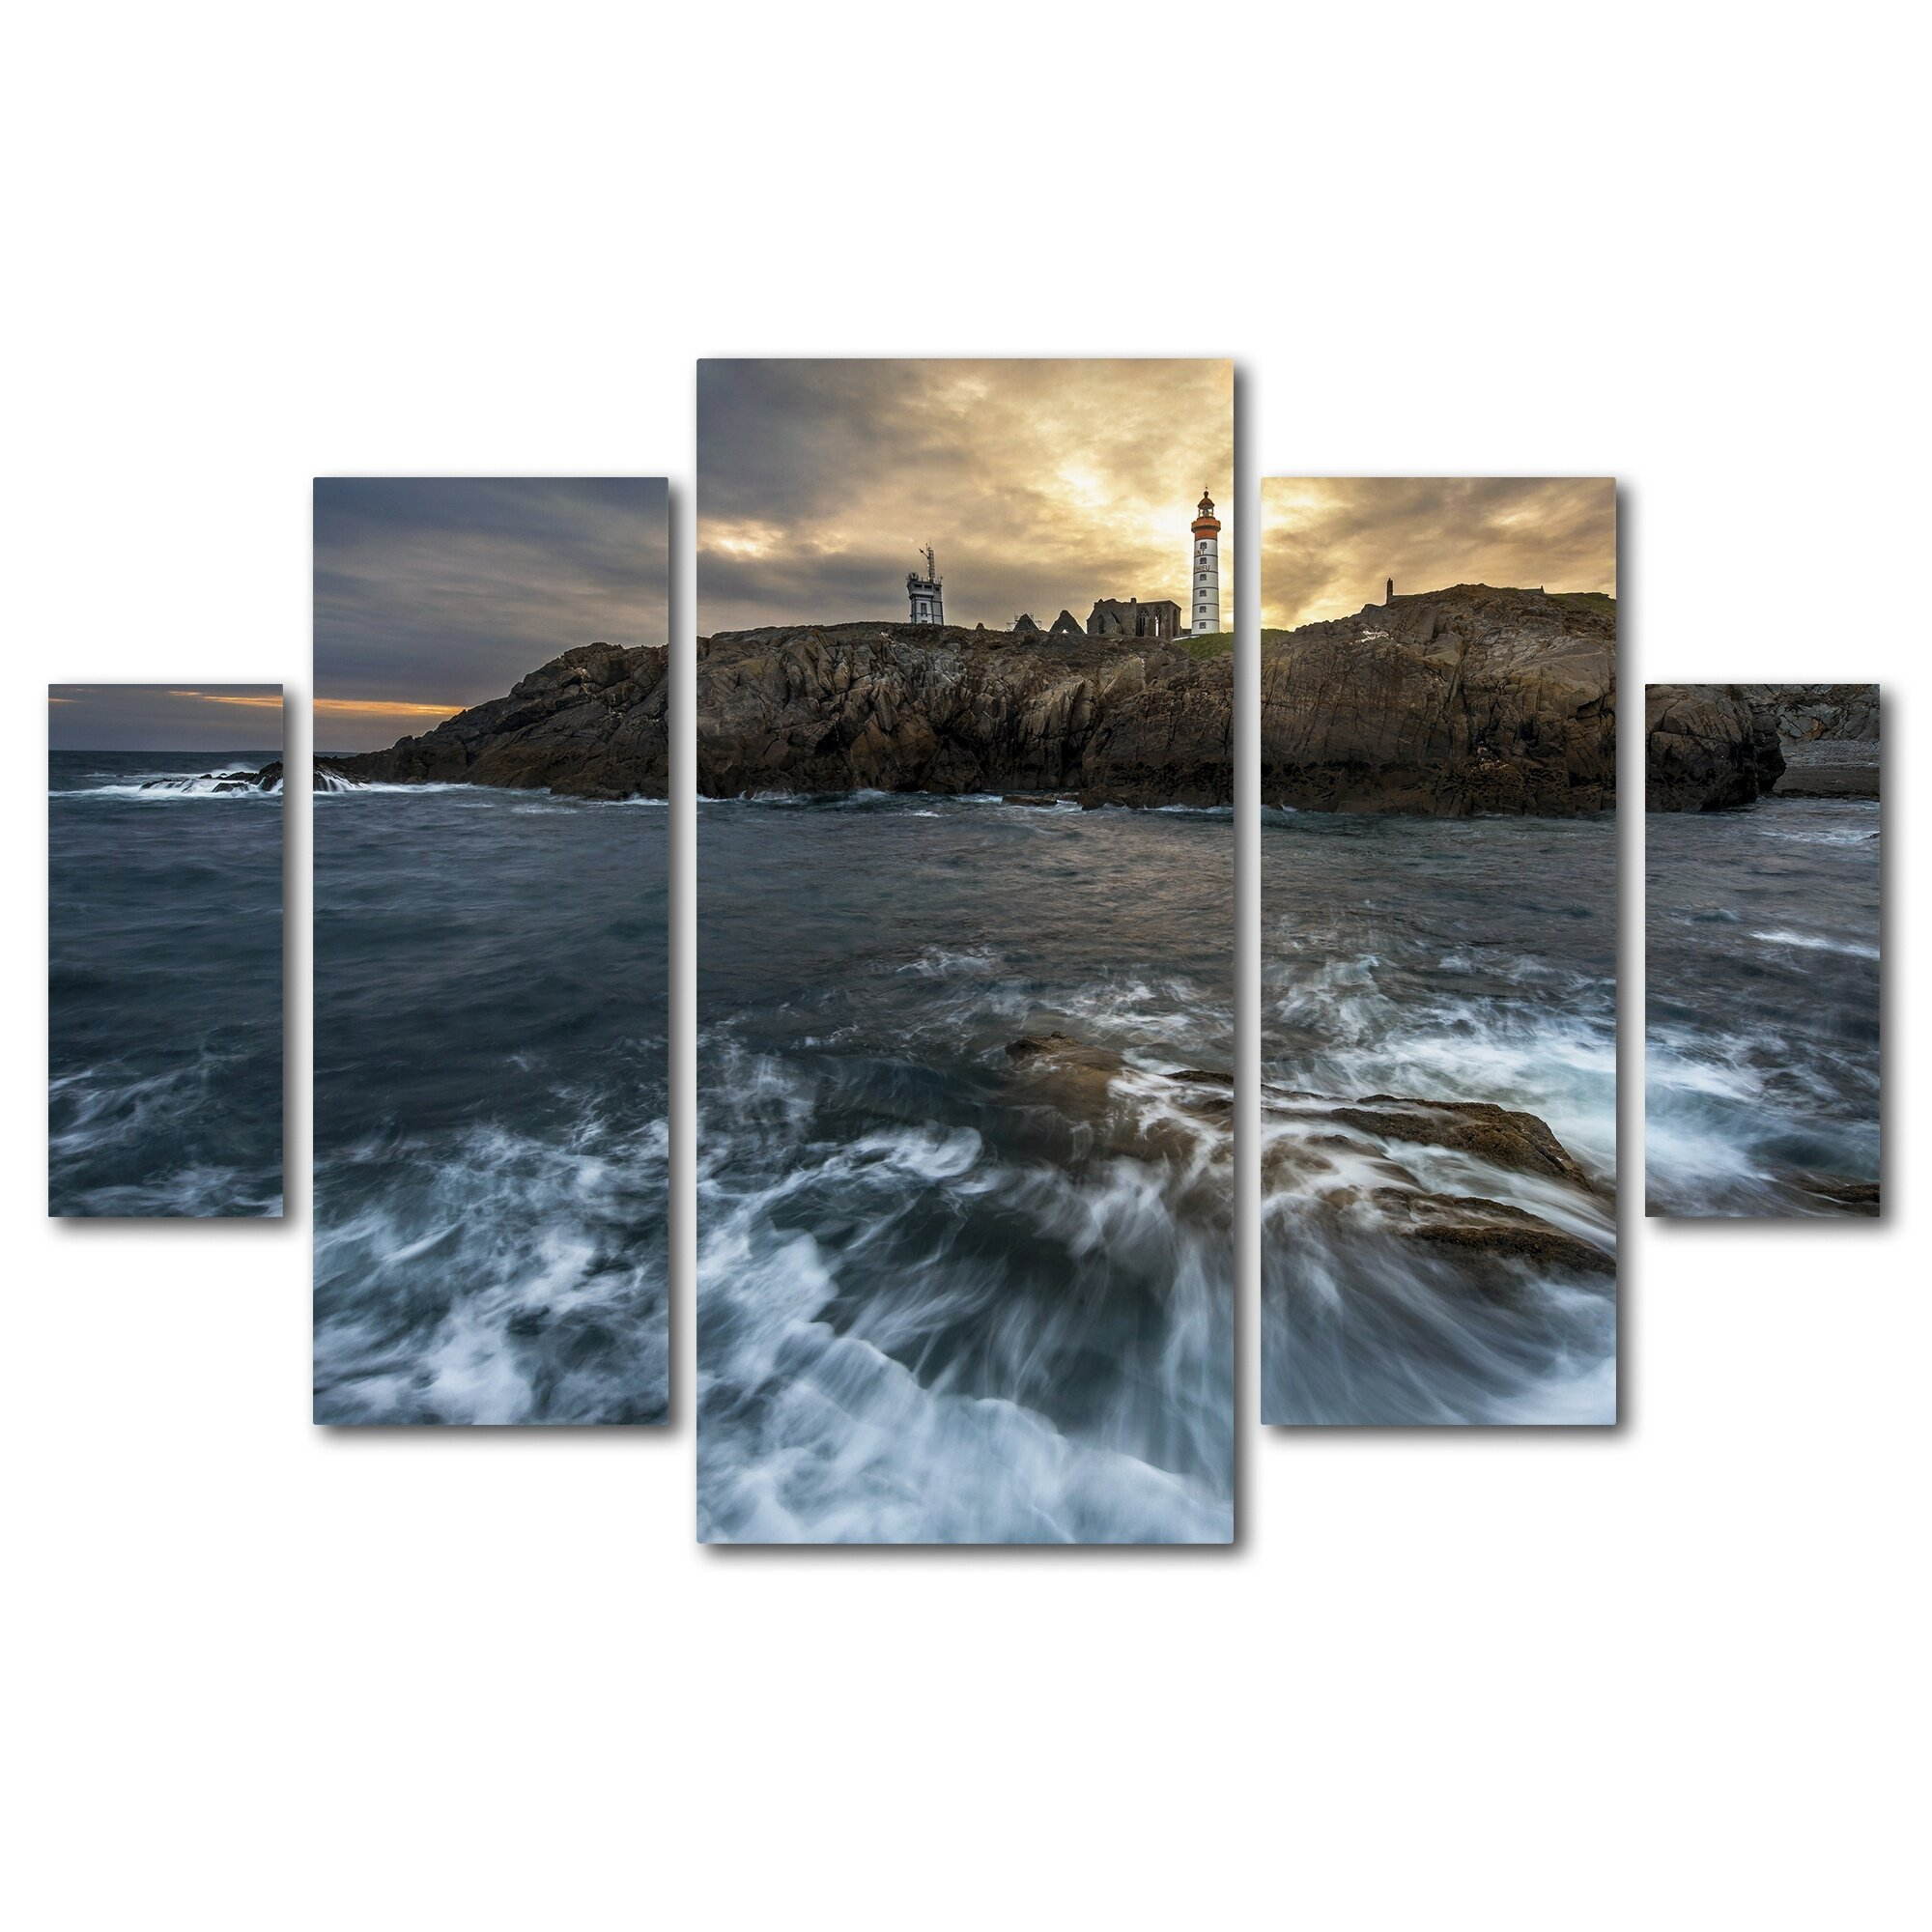 Trademark Art The Lighthouse by Mathieu Rivrin 5 Piece ... - Trademark Fine Art The Lighthouse by Mathieu Rivrin 5 Piece Photographic  Print on Wrapped Canvas Set